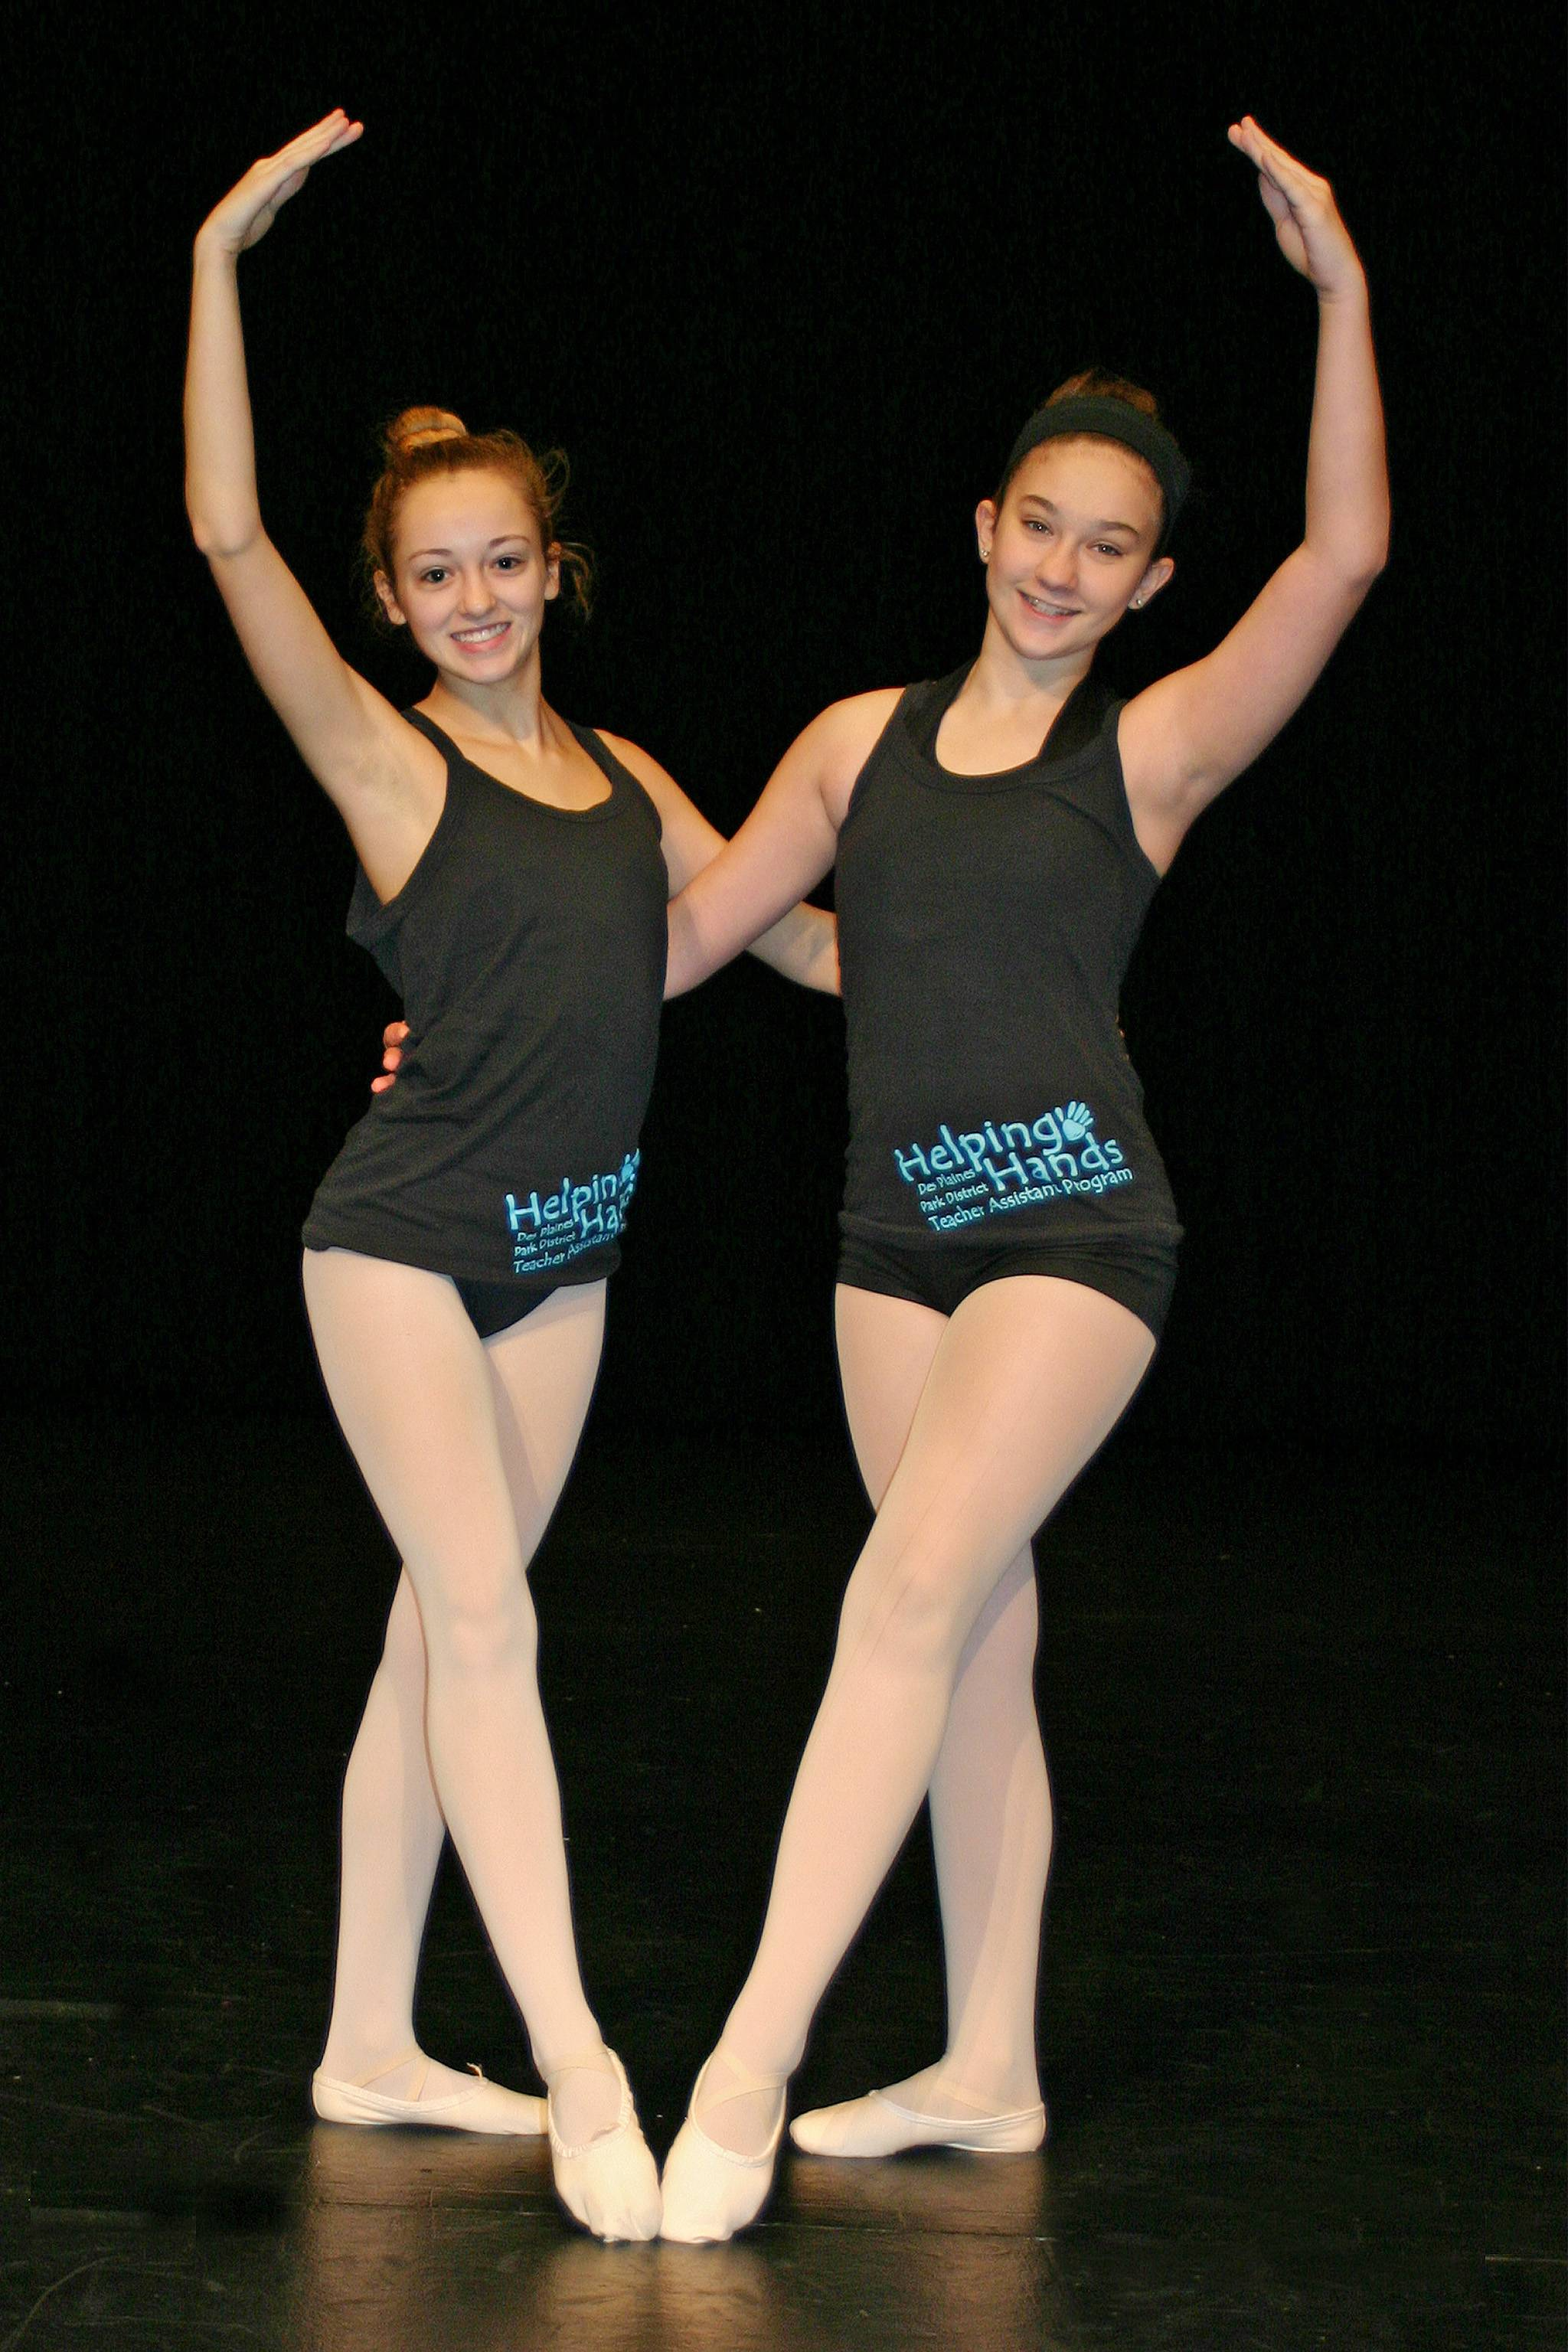 Georgina Genovese and Megan Swanson are two of the thirteen Helping Hands Dance Assistants for the Des Plaines Park District, assisting in ballet, tap and lyrical beginning level classes.